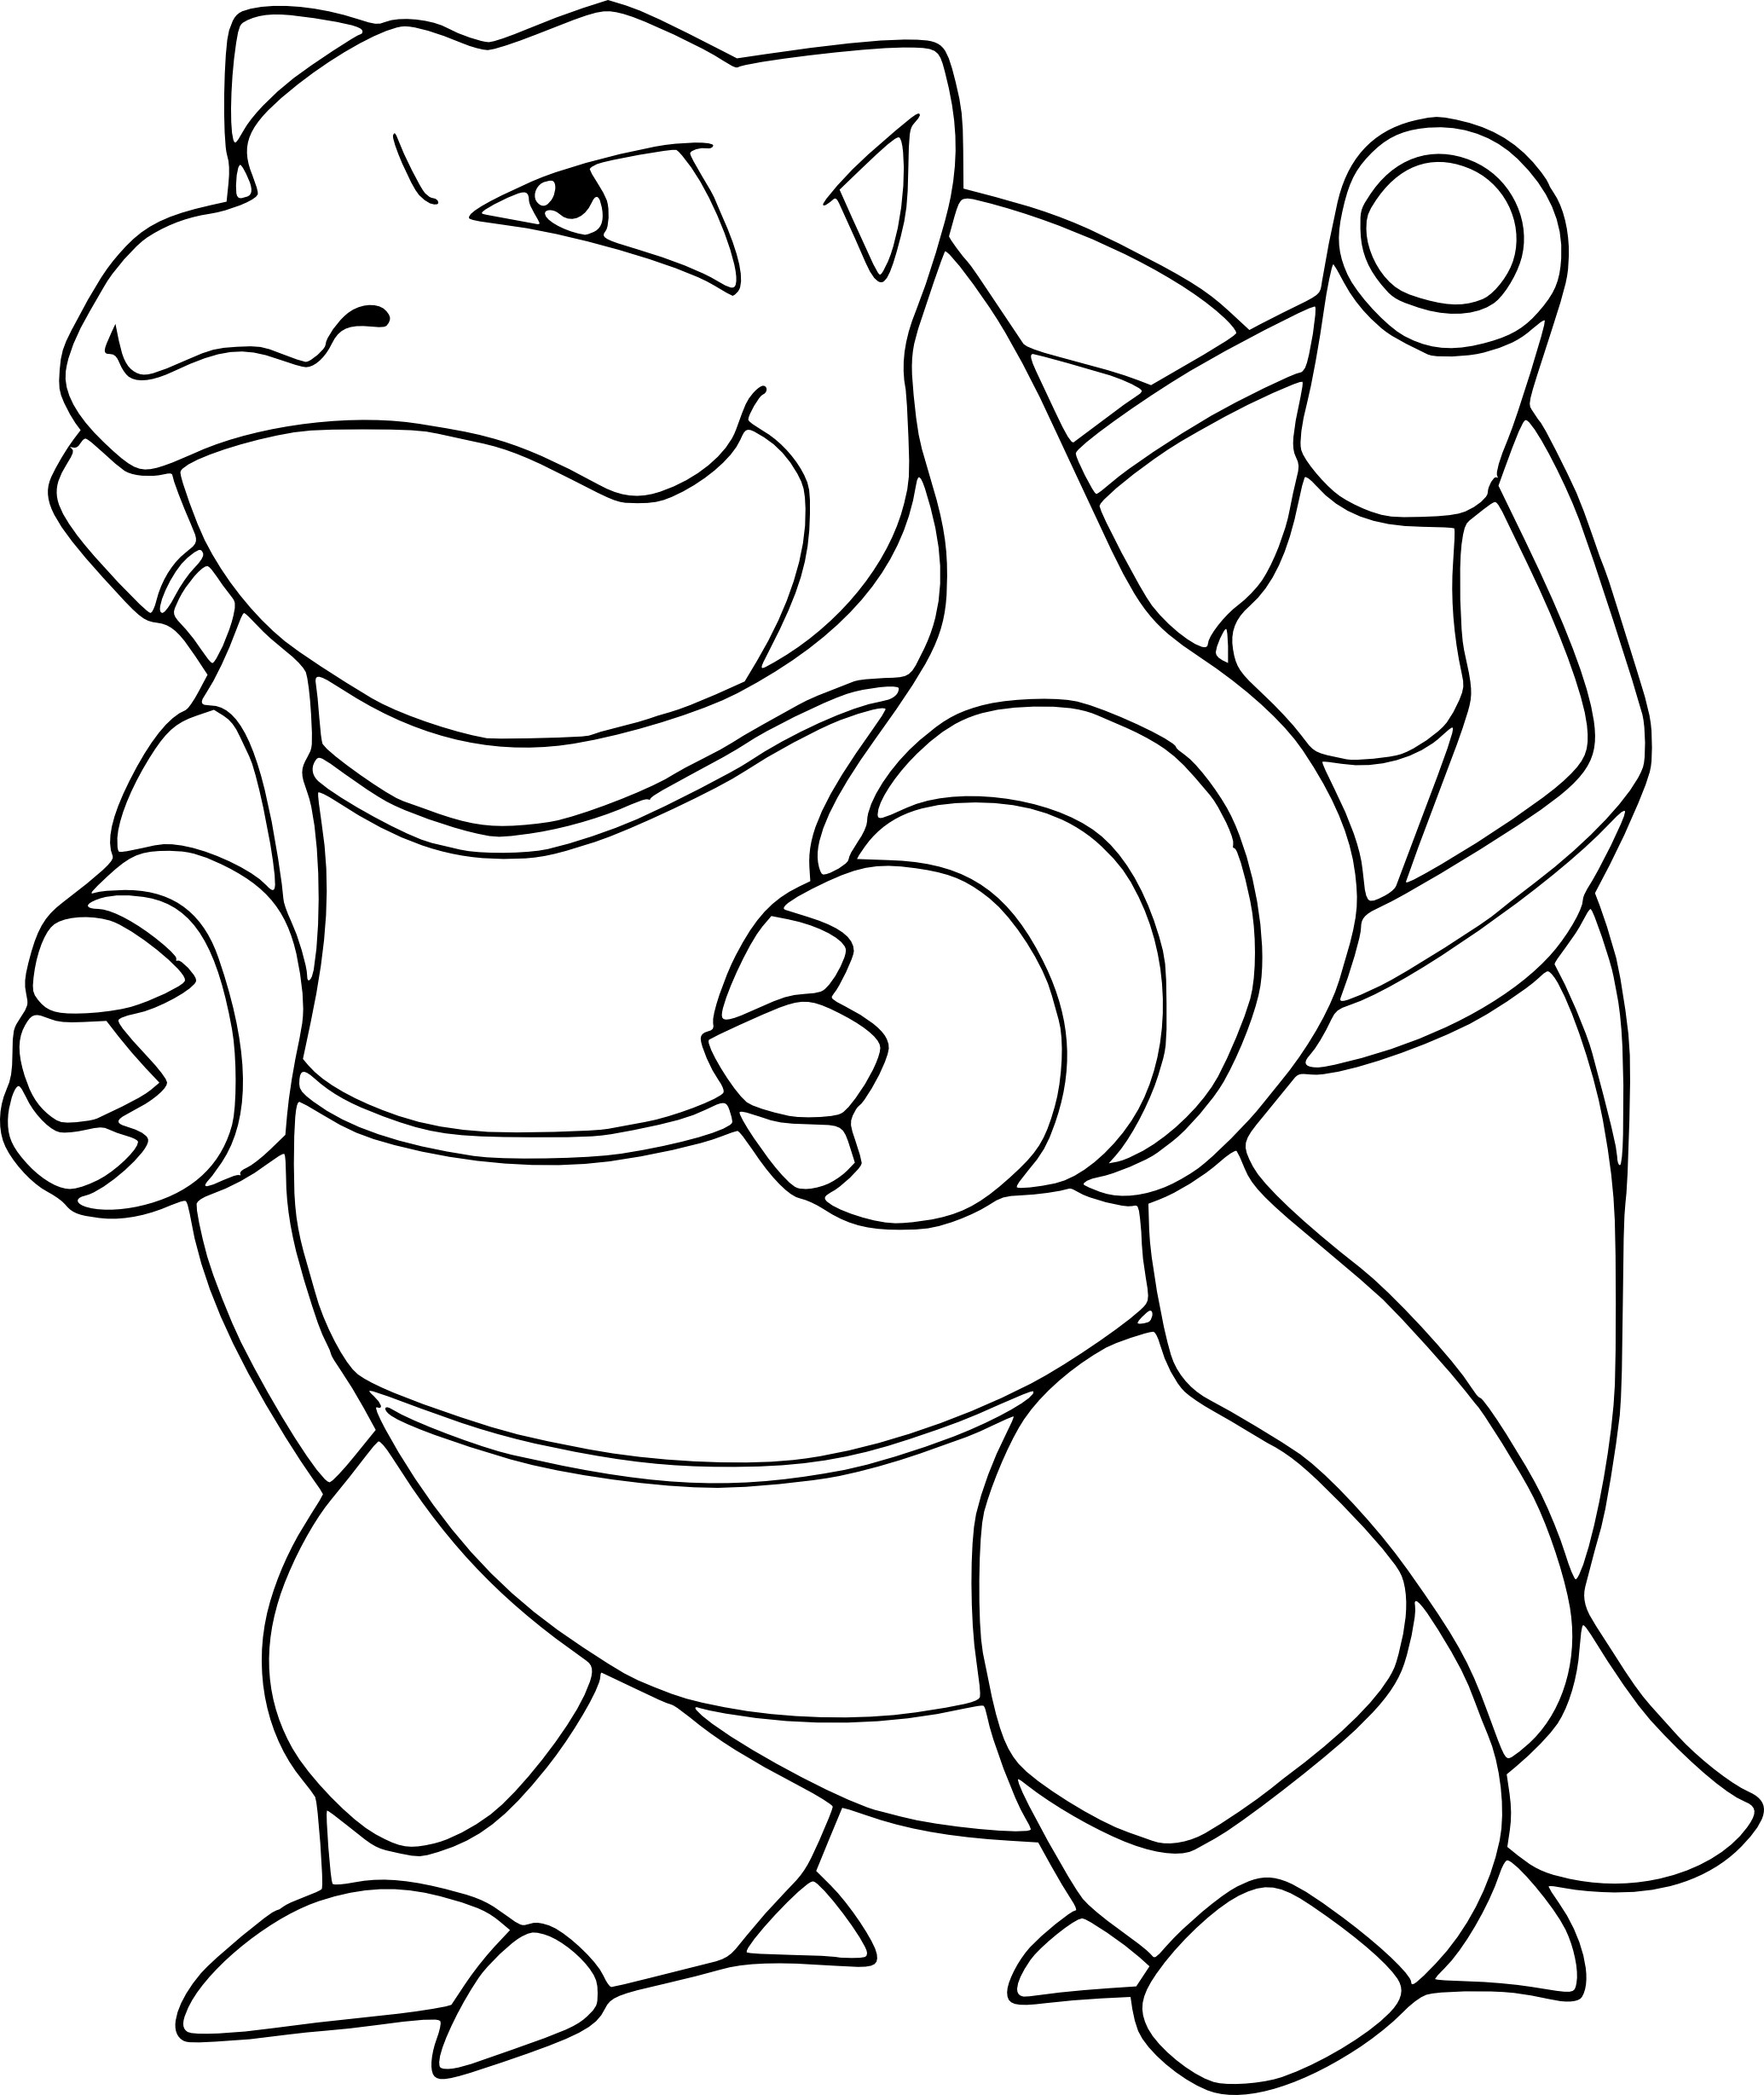 Coloriage Tortank Pokemon A Imprimer